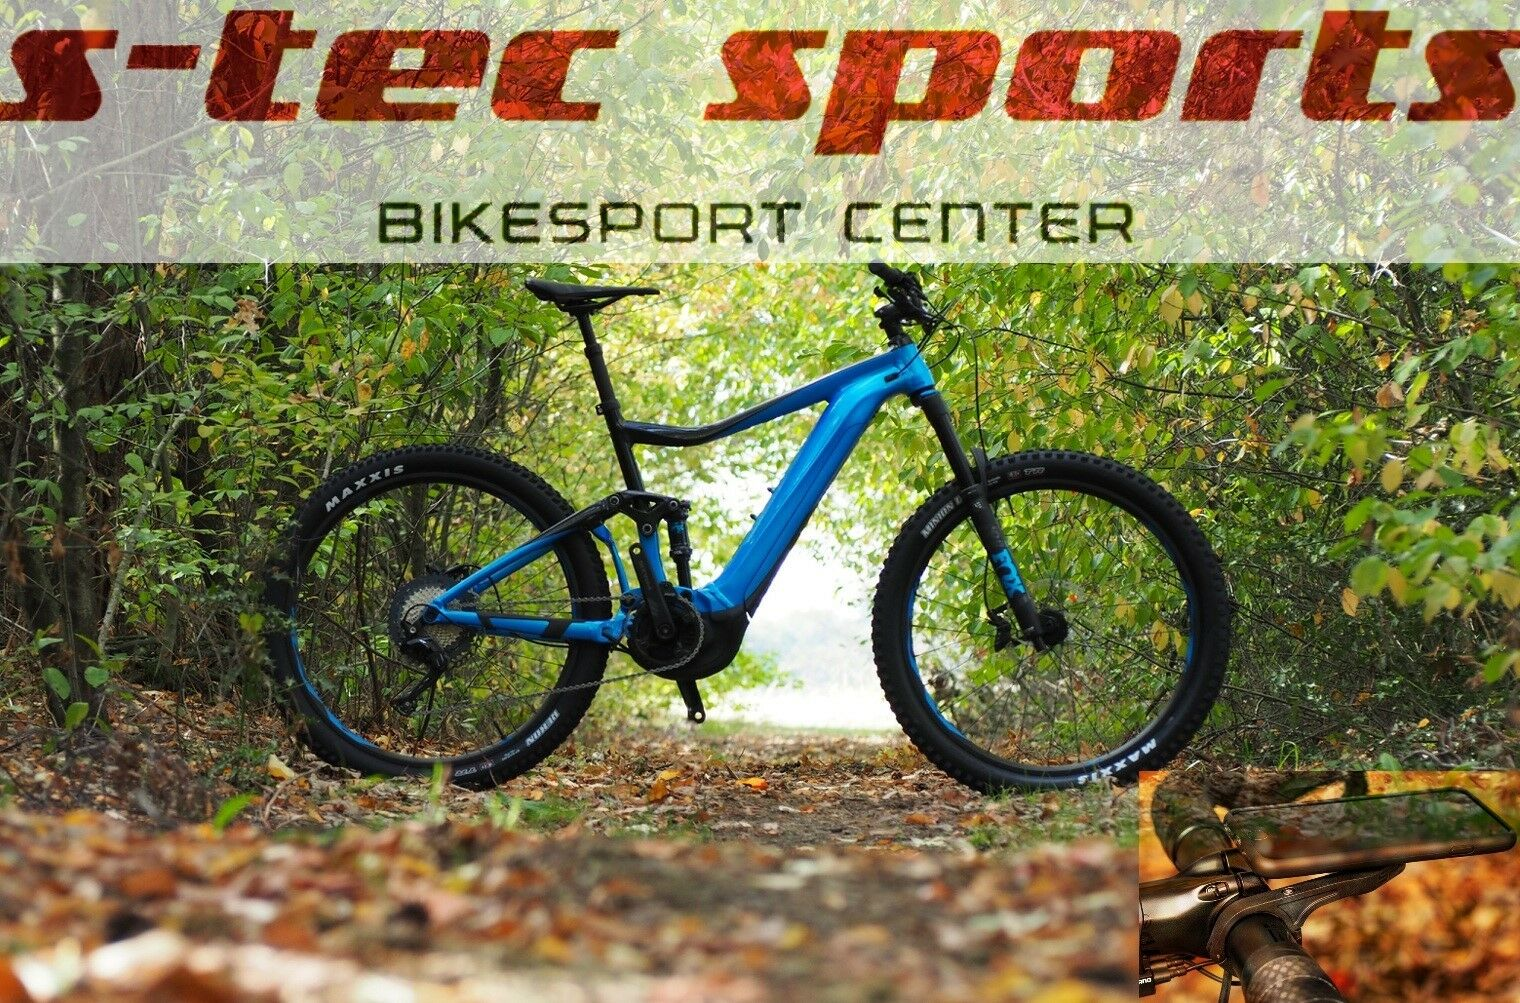 SP SMARTPHONE connectSupporto iPhone 87 per Giant Trance e, Giant BIKES 2019